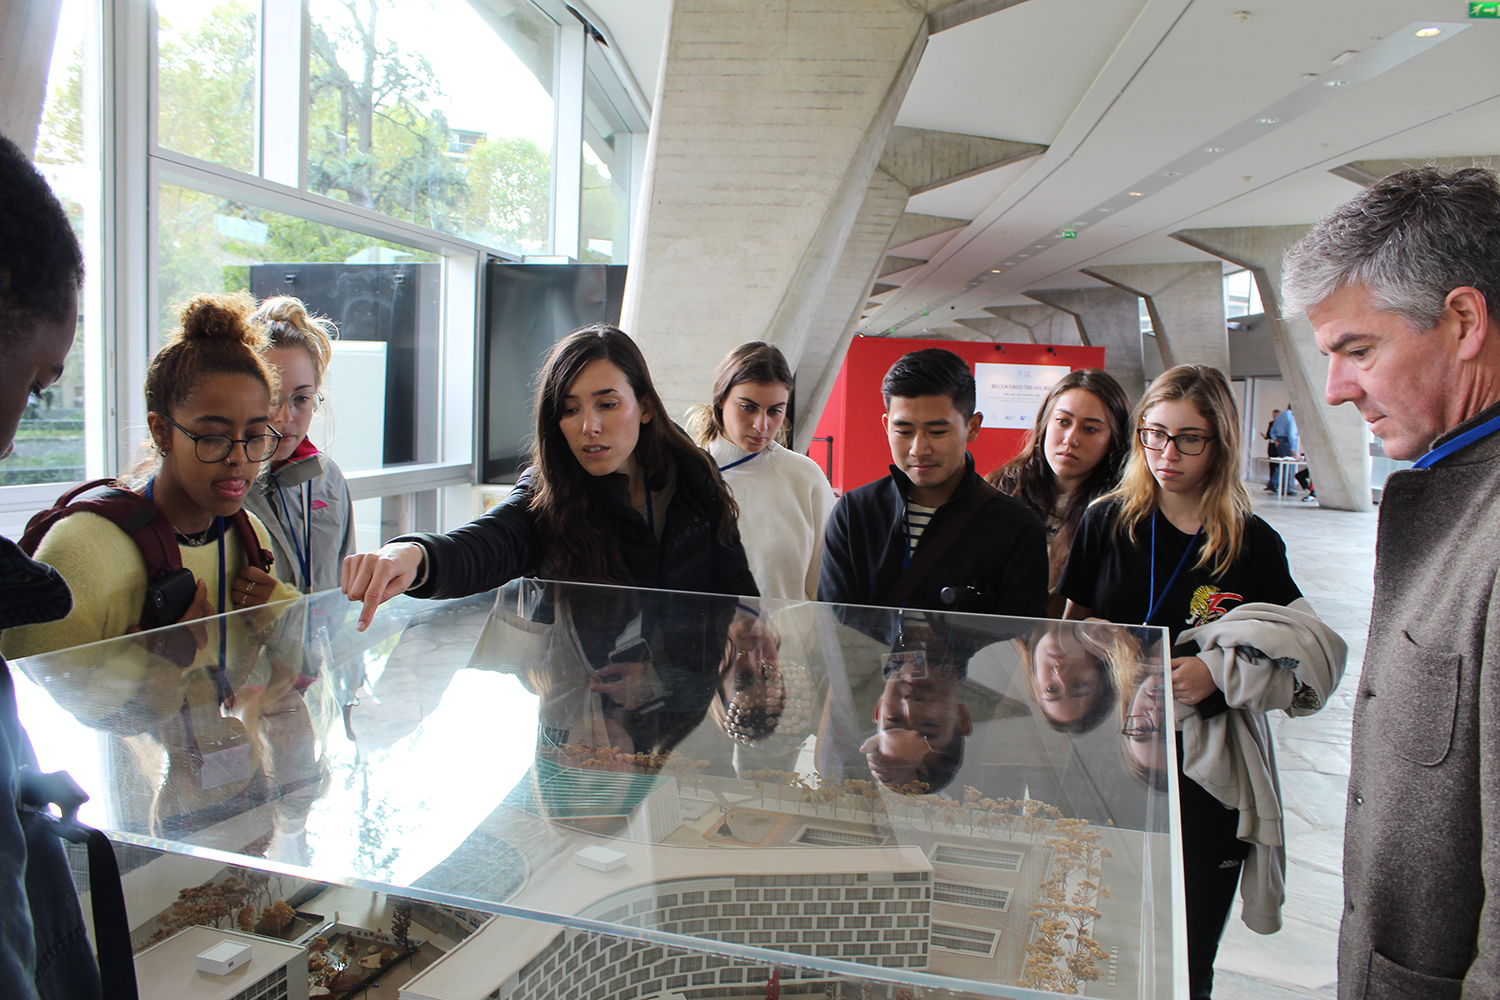 A group of people looking at a model inside a glass case.